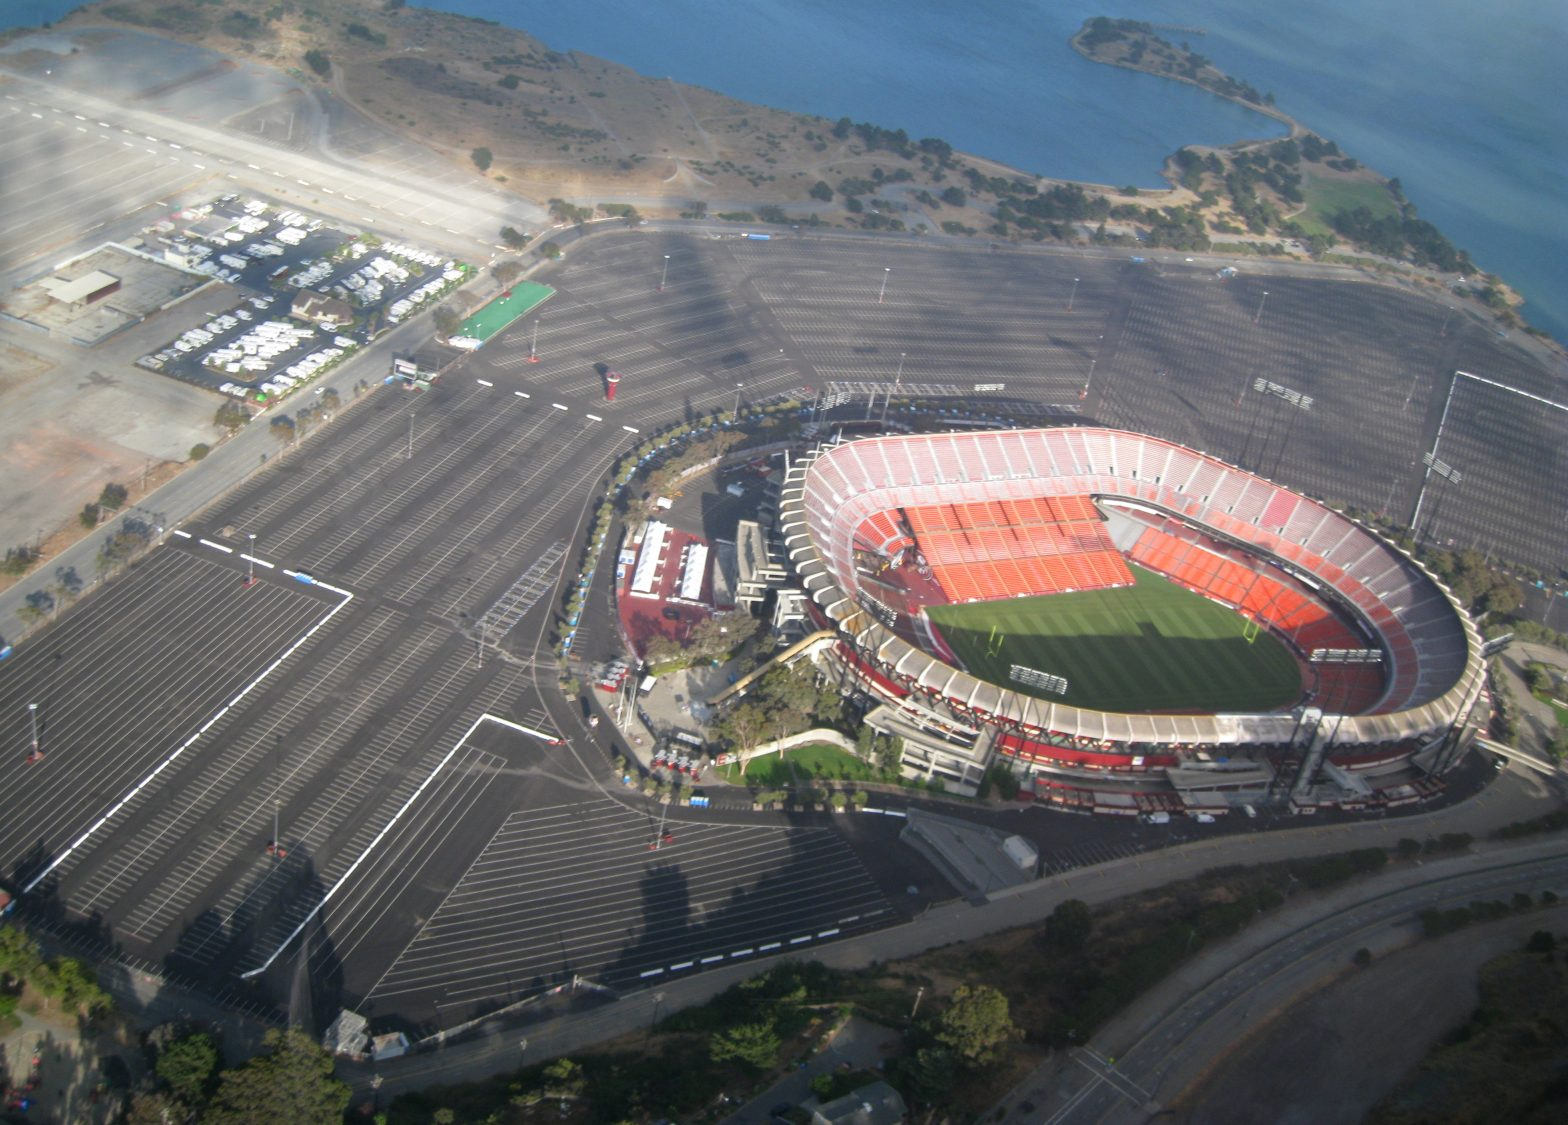 candlestick_park_aerial_creative_commons.jpg